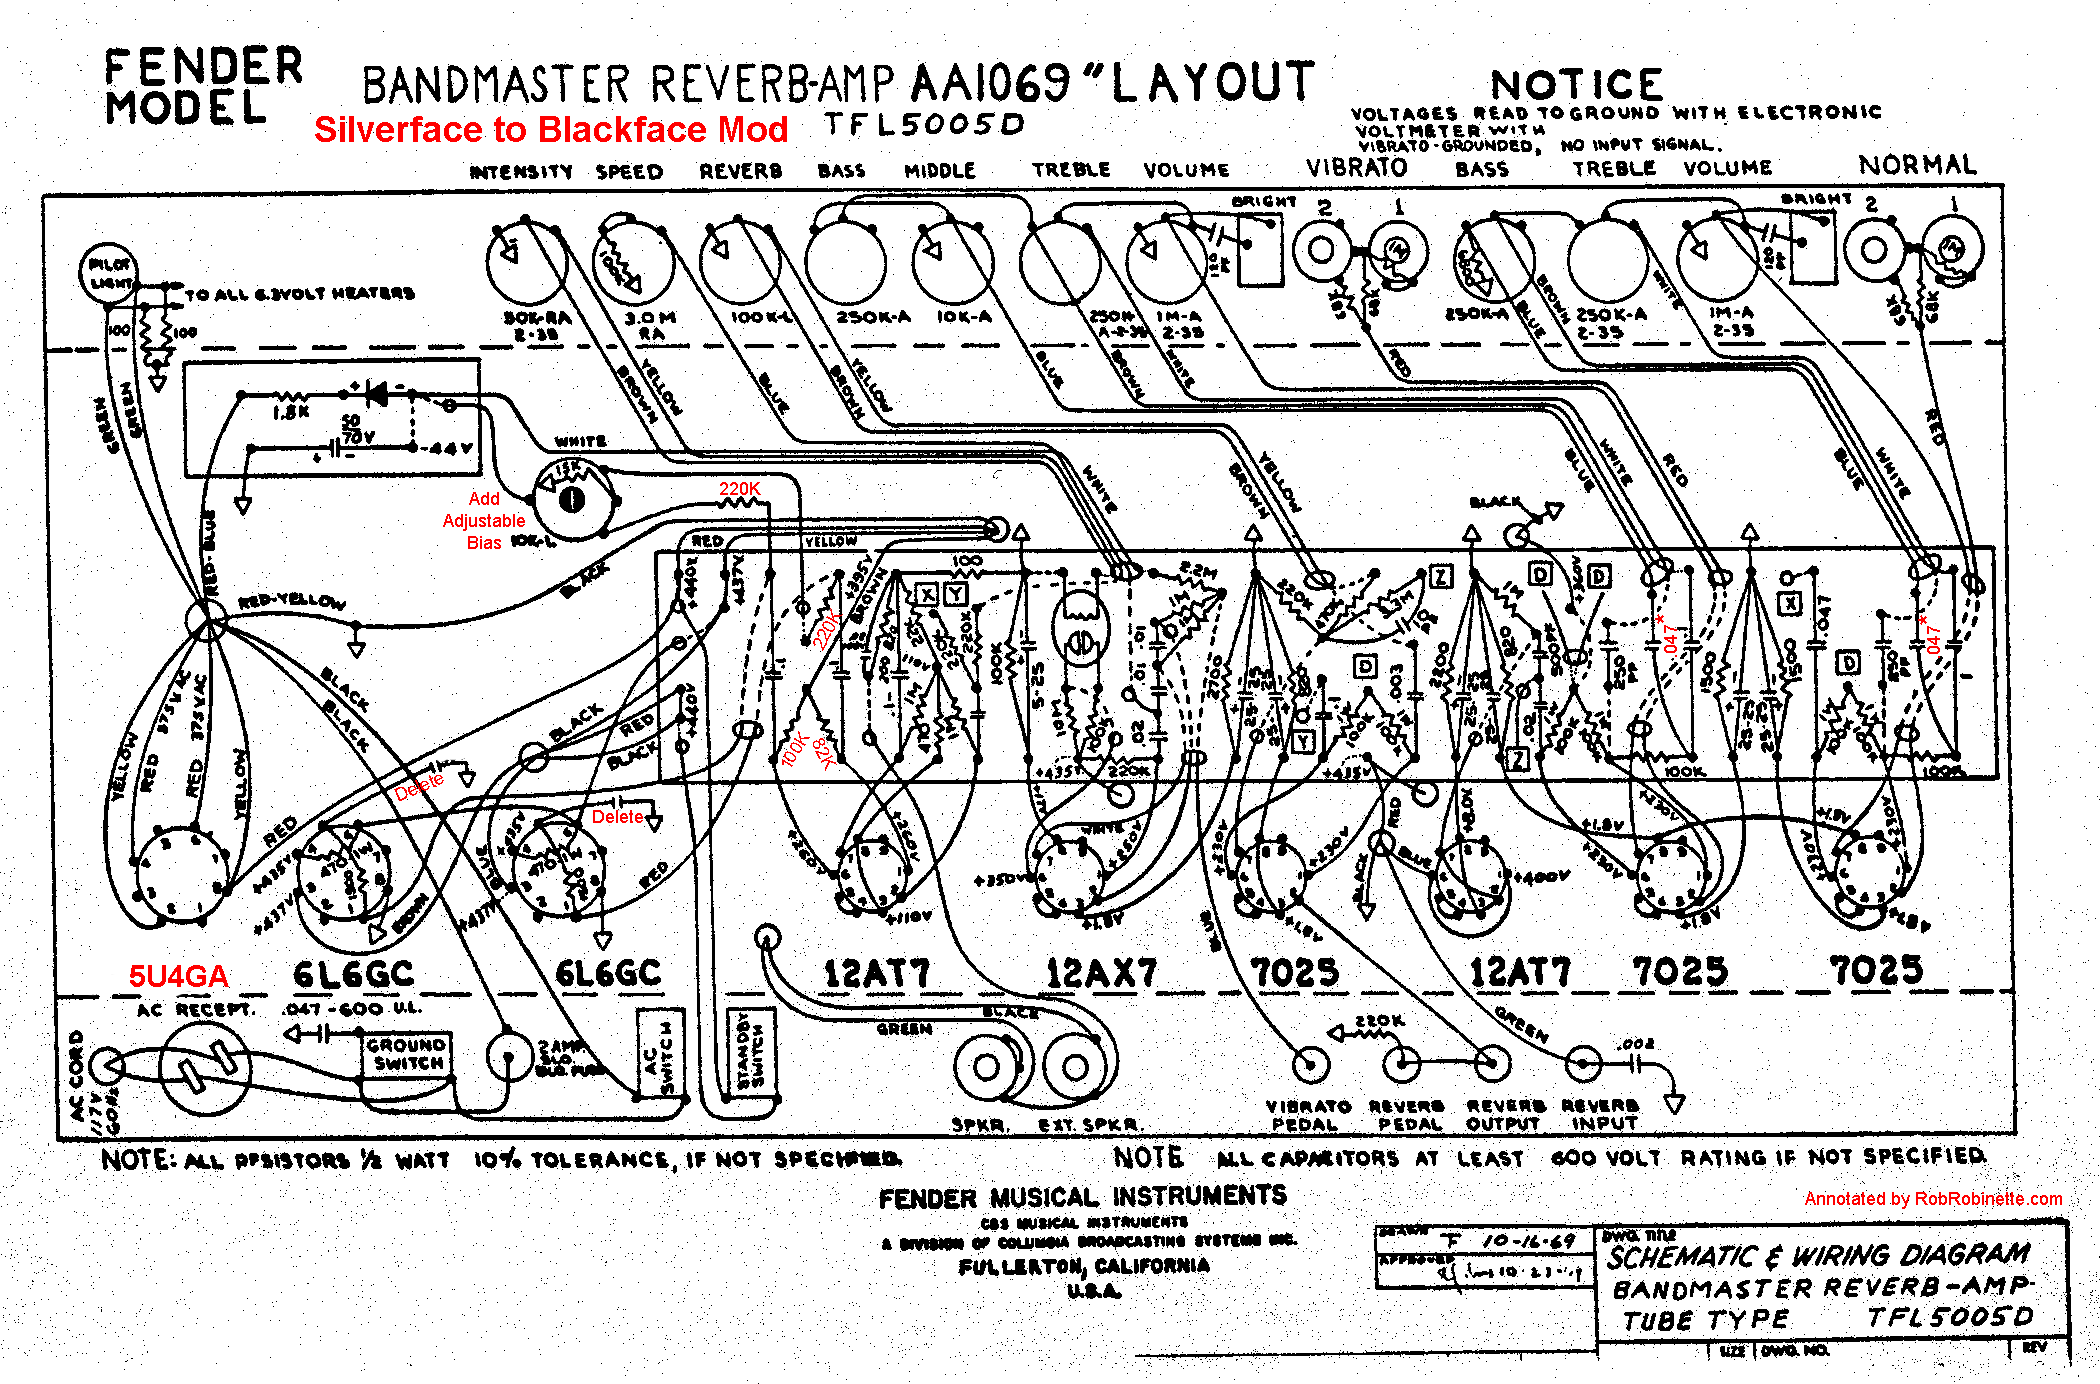 Ab763 Mods Blank Tele Wiring Diagram Mod The Vibroverb Came With An 8 Ohm Output Transformer 820 47 Negative Feedback Circuit Bandmaster Reverb Uses A 4